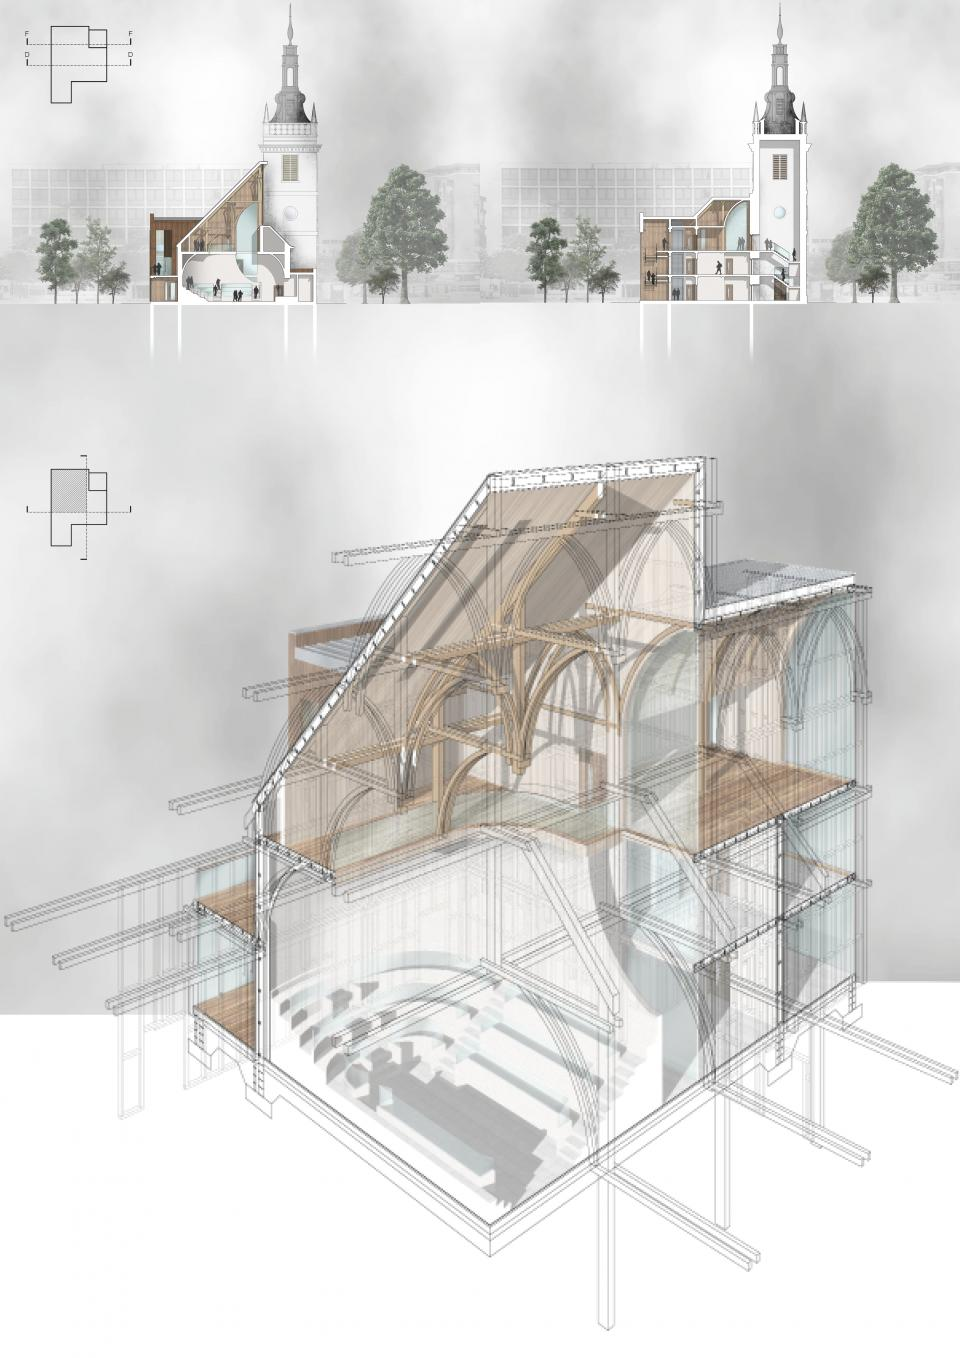 Ana Taylor_Architecture - MArch_2020_Tectonics of Sanctuary_5.jpg